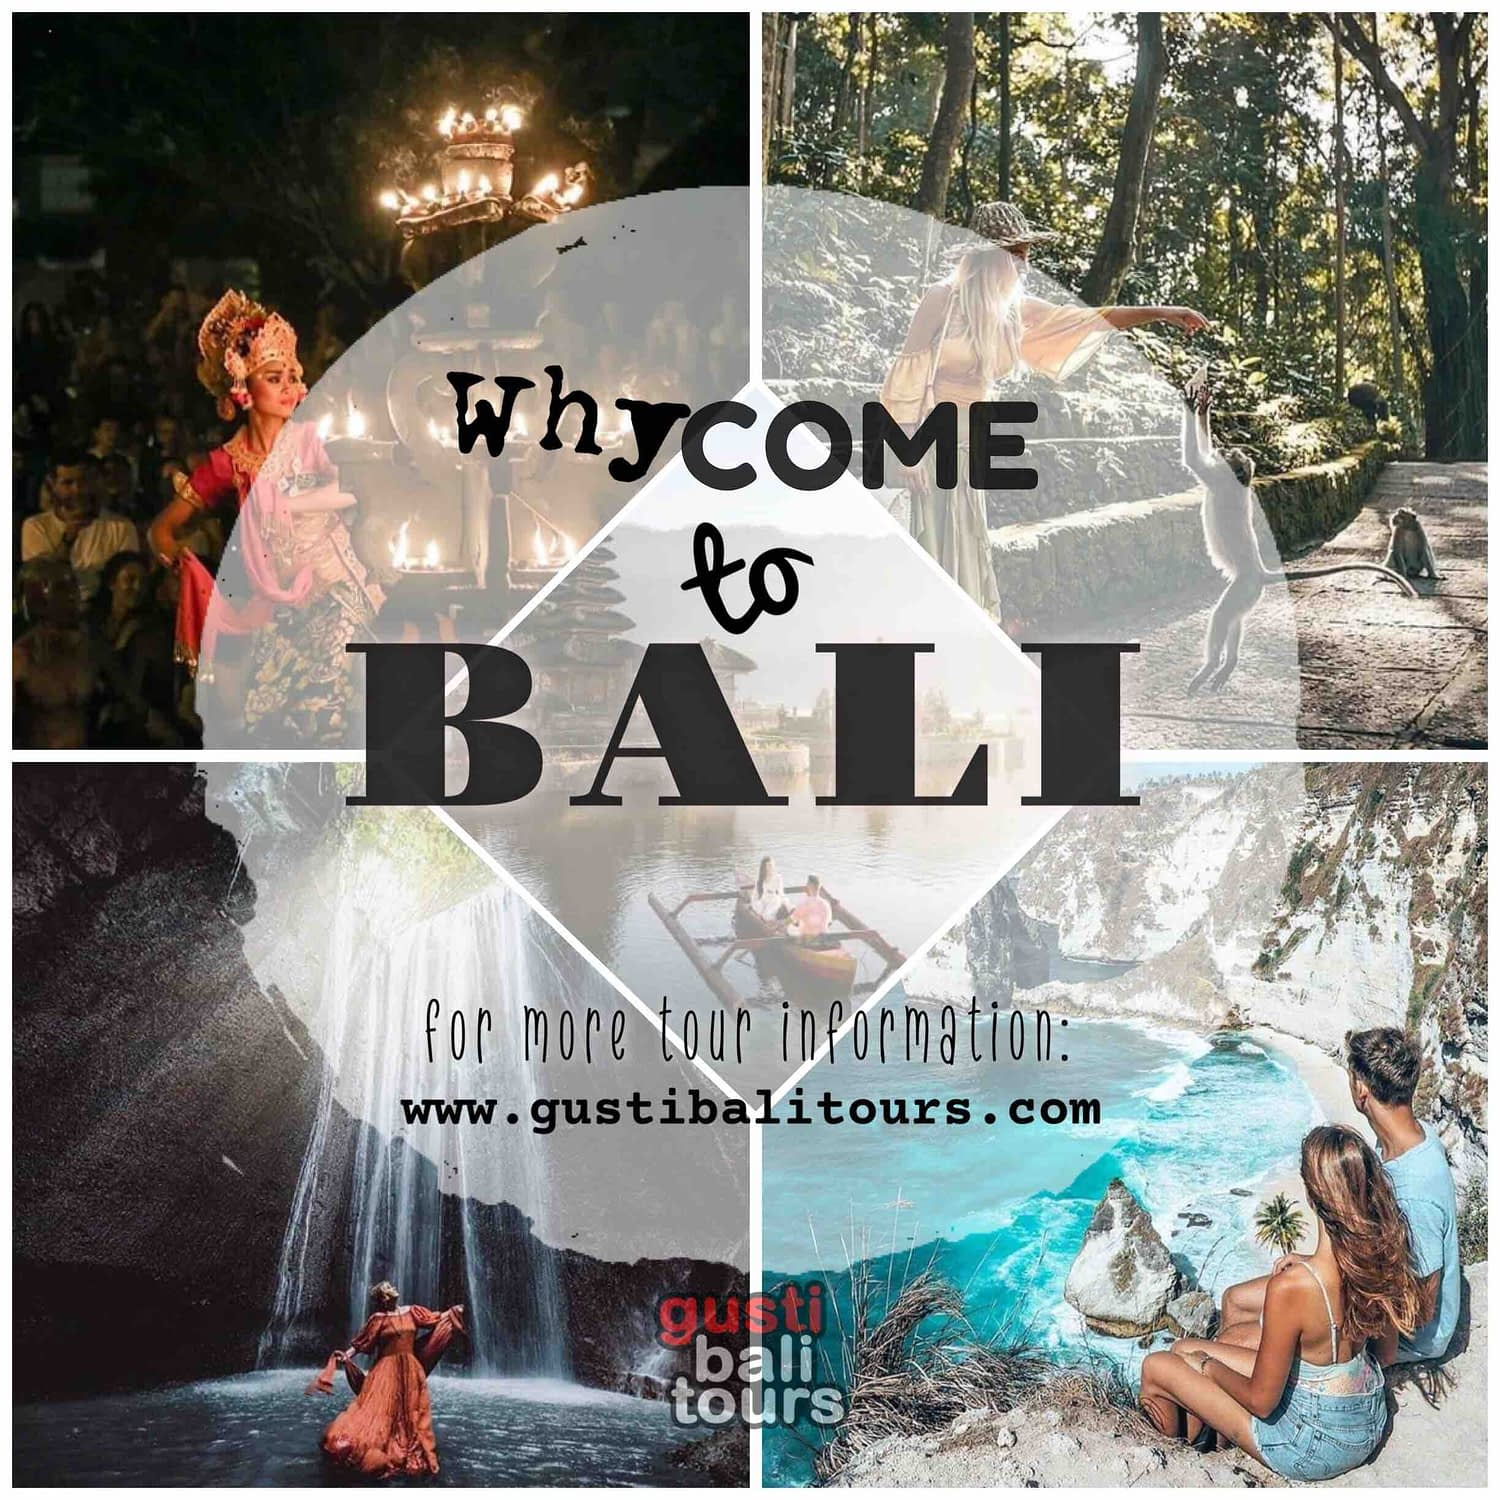 WhyCome to Bali